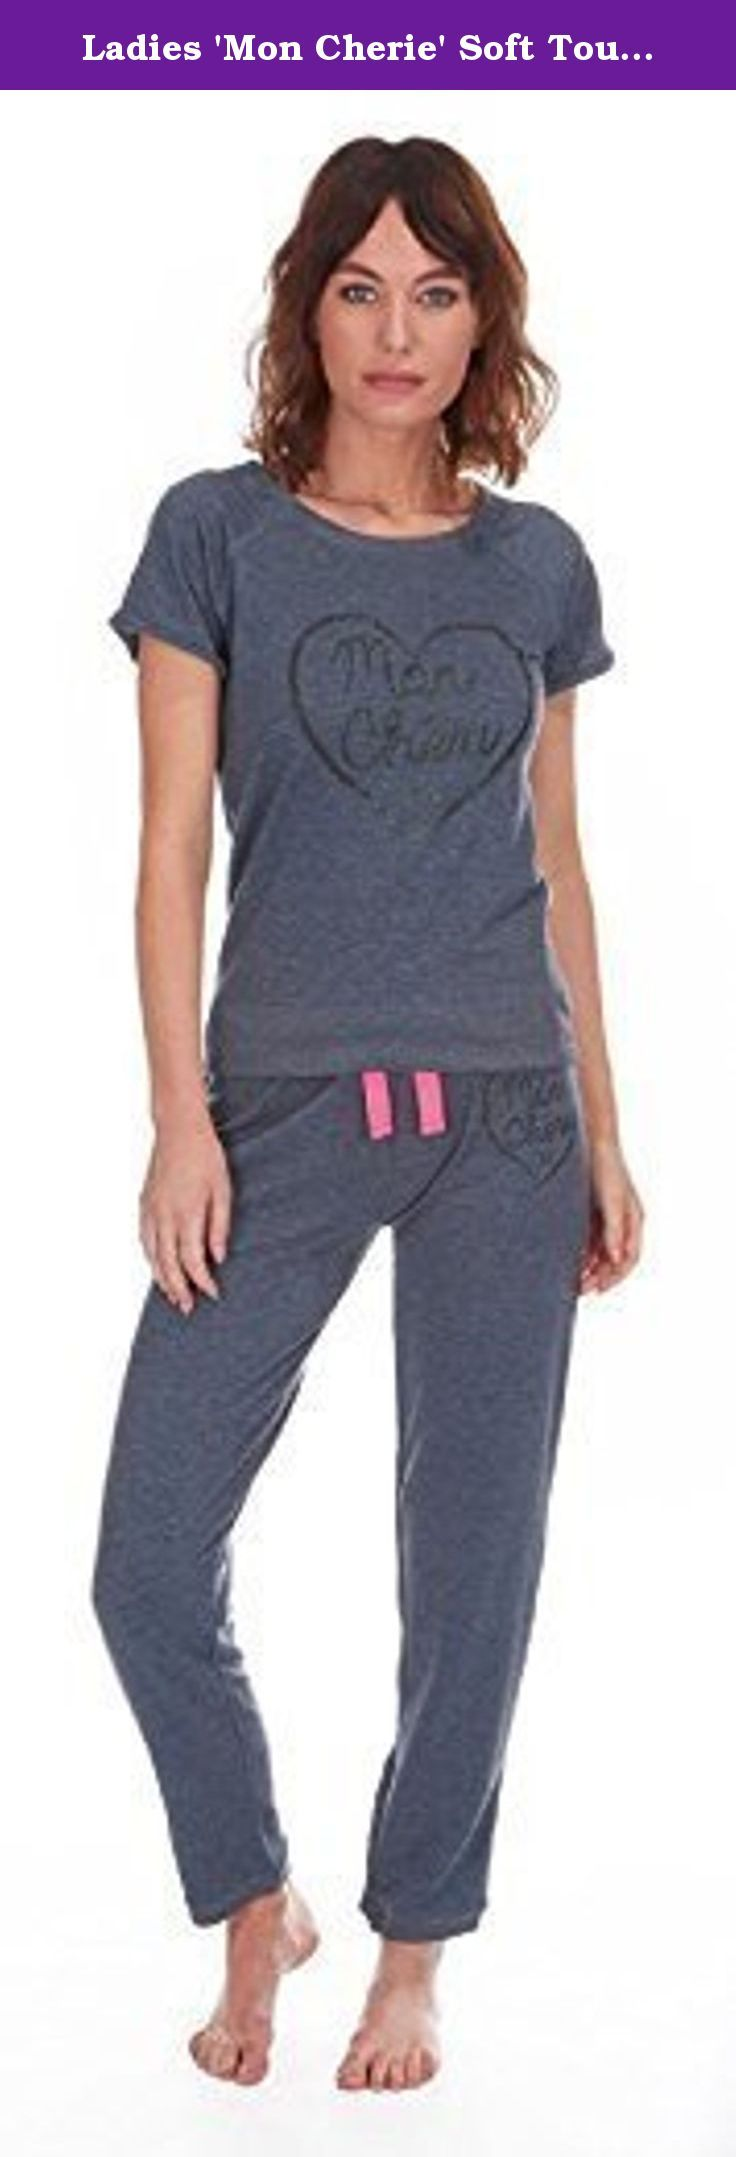 """Ladies 'Mon Cherie' Soft Touch Lounge / Pyjama Set (Medium, Denim Marl). Ladies soft touch lounge set with 'Mon Cheri' design on front. Short sleeve top. Elasticated waist with tie. Approx 27-28"""" inside leg. 62% Polyester, 34% Cotton, 4% Elastane. Small = UK 8-10 = approx EU 36-38 ~ USA 4-6 ~ AUS 8-10 *** Medium = UK 12-14 = approx EU 40-42 ~ USA 8-10 ~ AUS 12-14 Large = UK 16-18 = approx EU 44-46 ~ USA 12-14 ~ AUS 16-18 *** XL = UK 20-22 = approx EU 48-50 ~ USA 16-18 ~ AUS 20-22."""